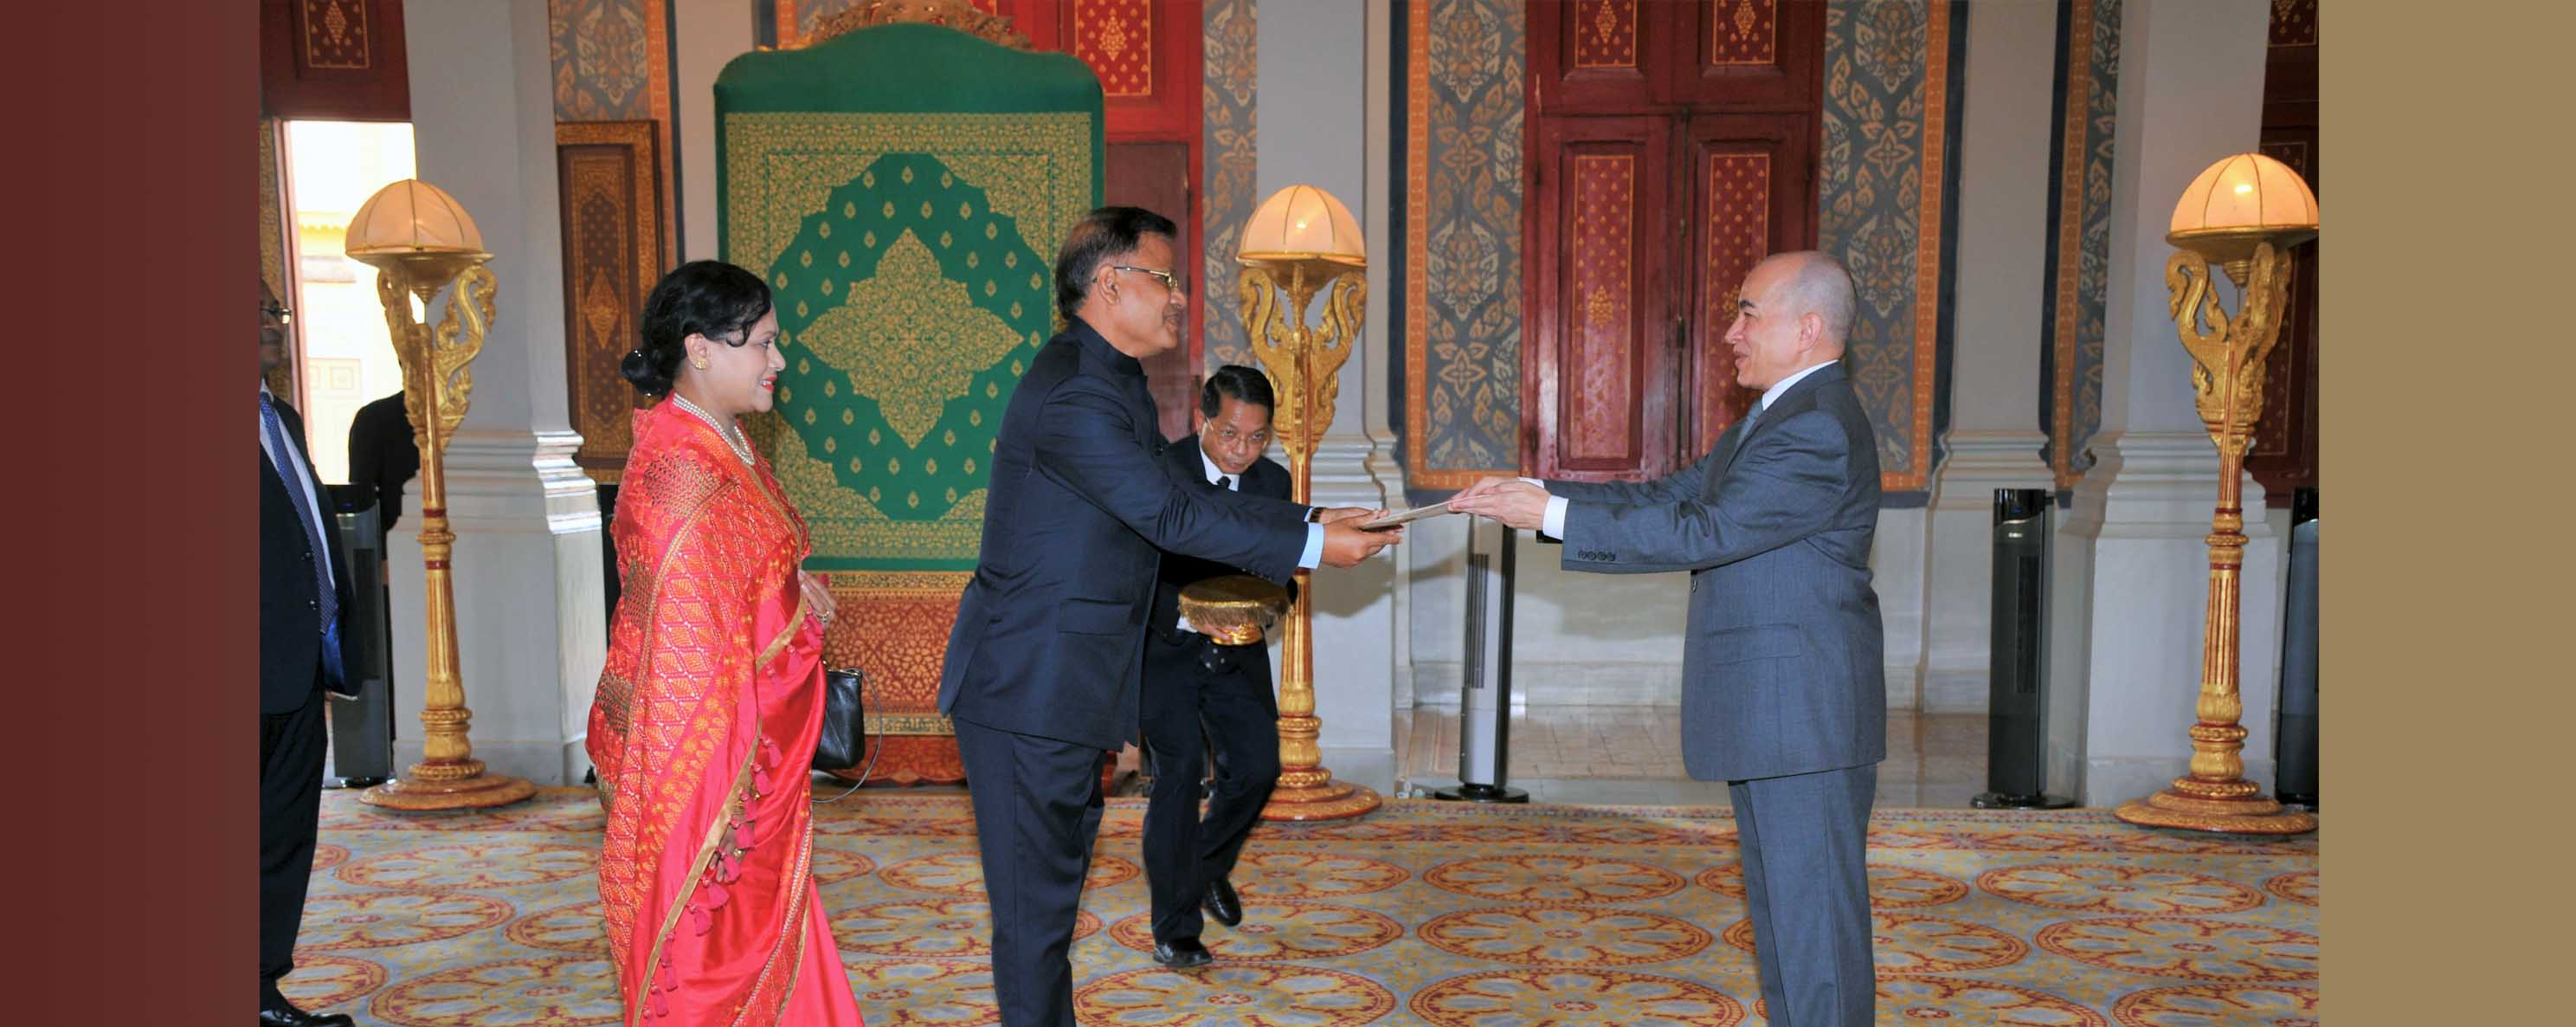 H.E. Md. Nazmul Quaunine, Bangladesh Ambassador to Thailand & Cambodia presenting credential to His Majesty King of Cambodia Norodom Sihamoni